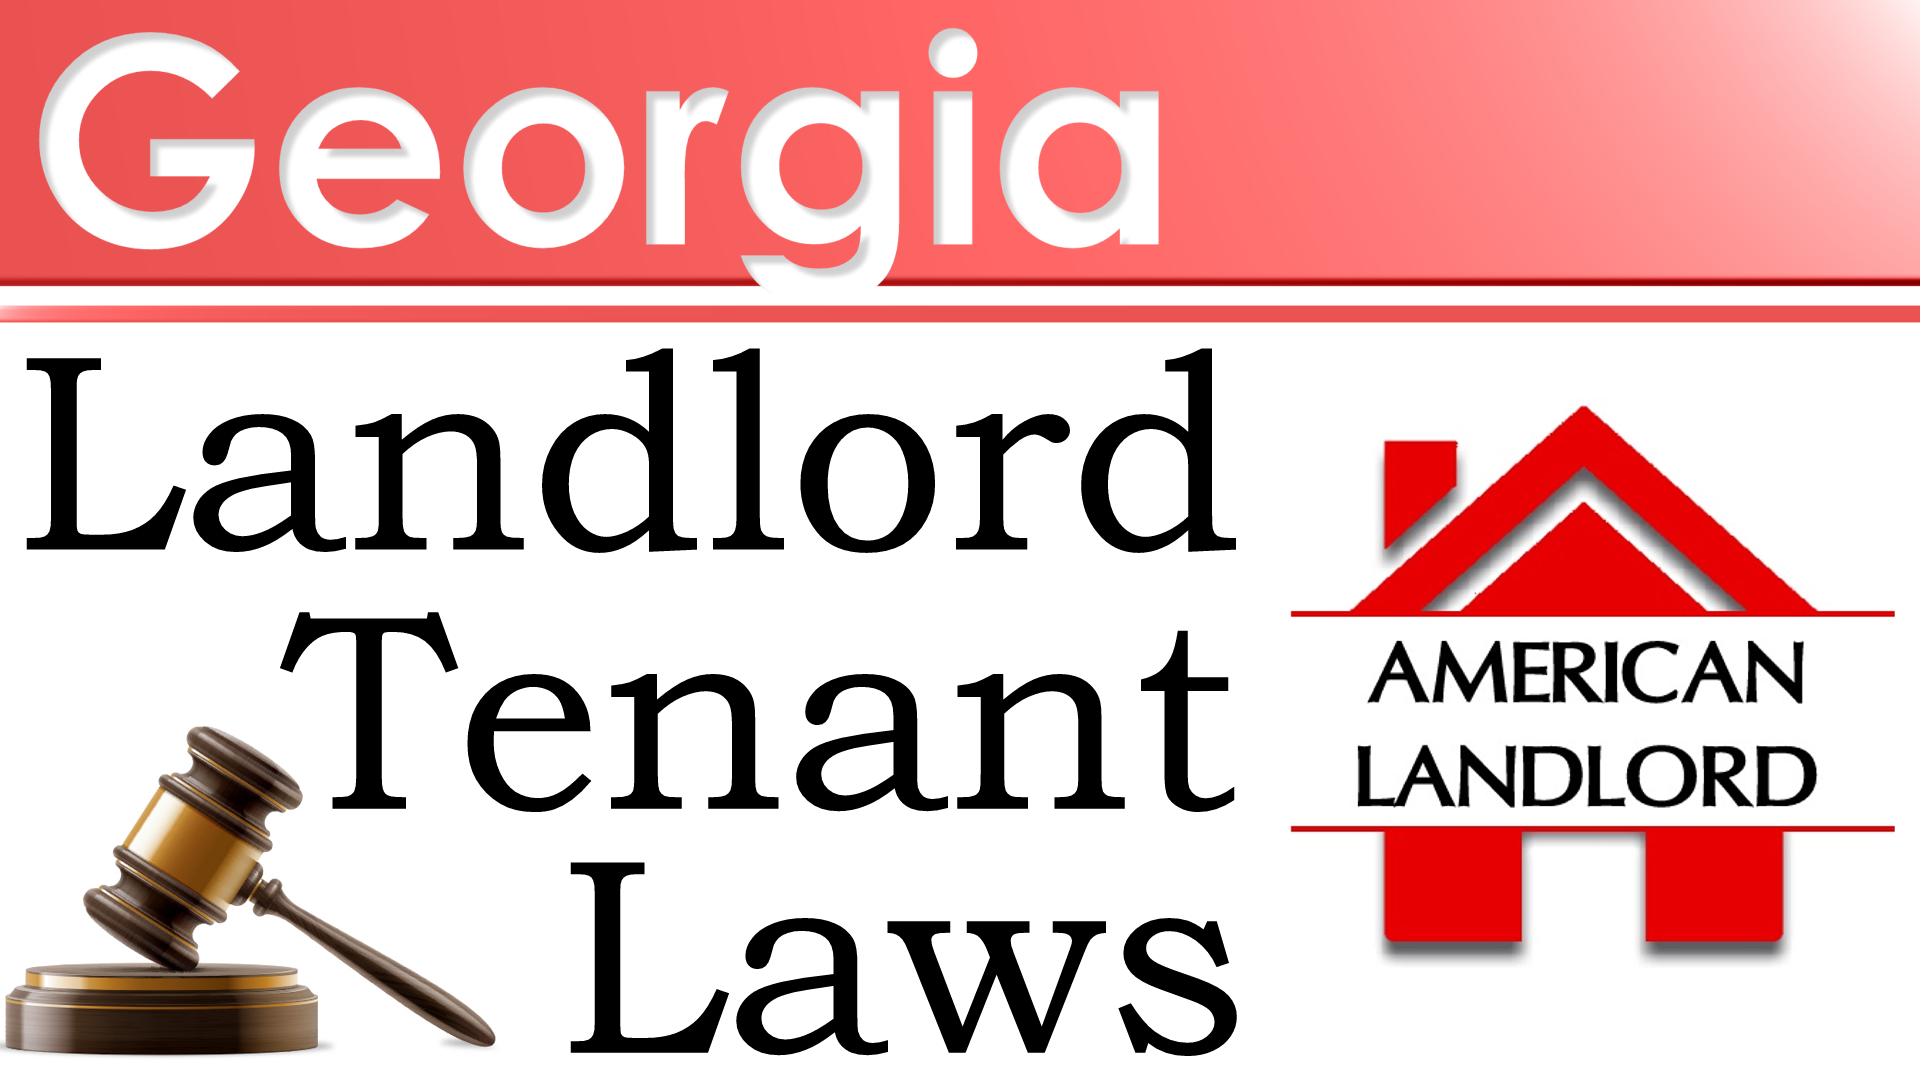 Georgia Landlord Tenant Law